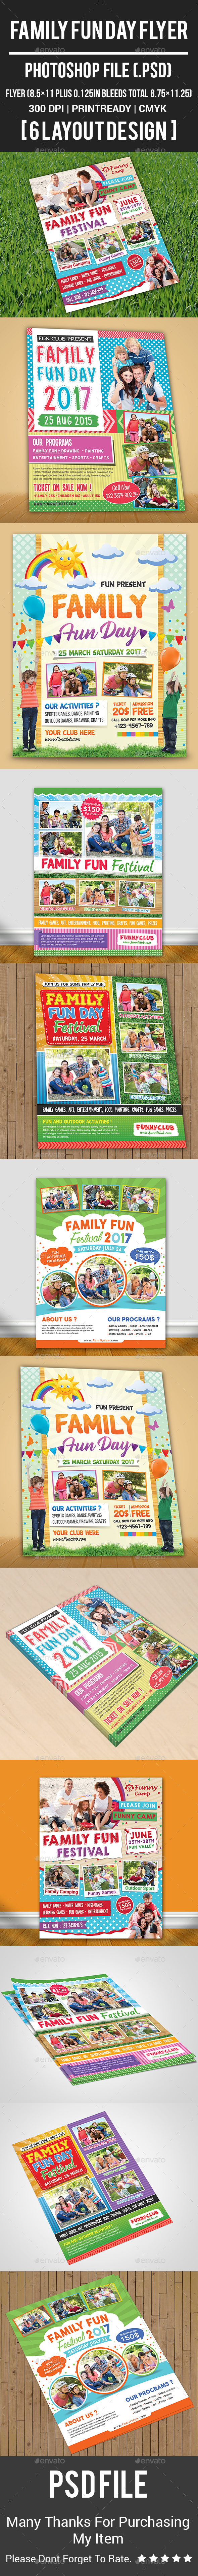 Family Fun Day Flyer - Corporate Flyers